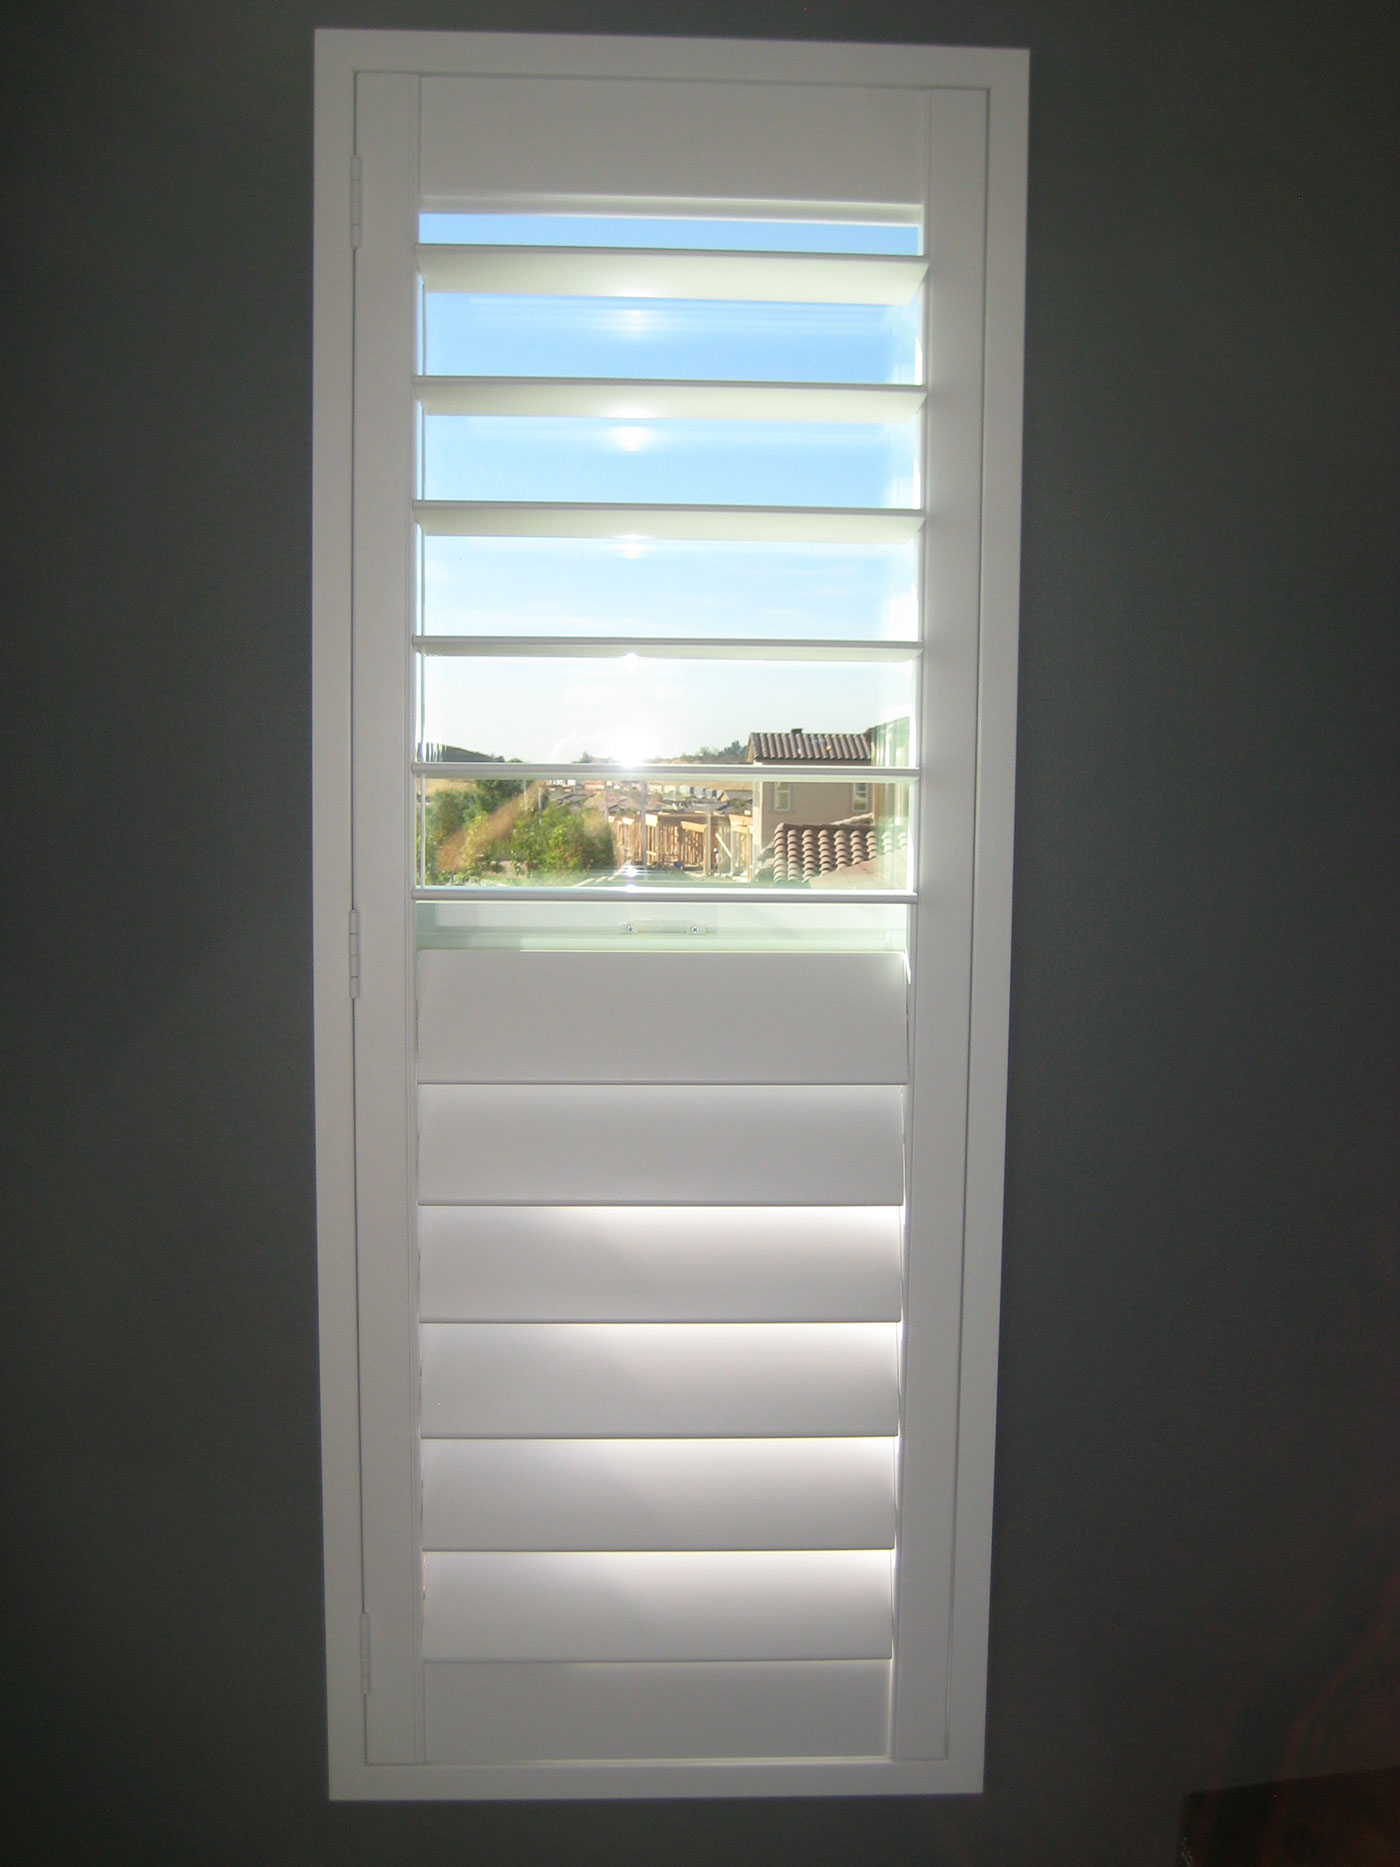 Thrifty Shutters Shutter Installation Repair